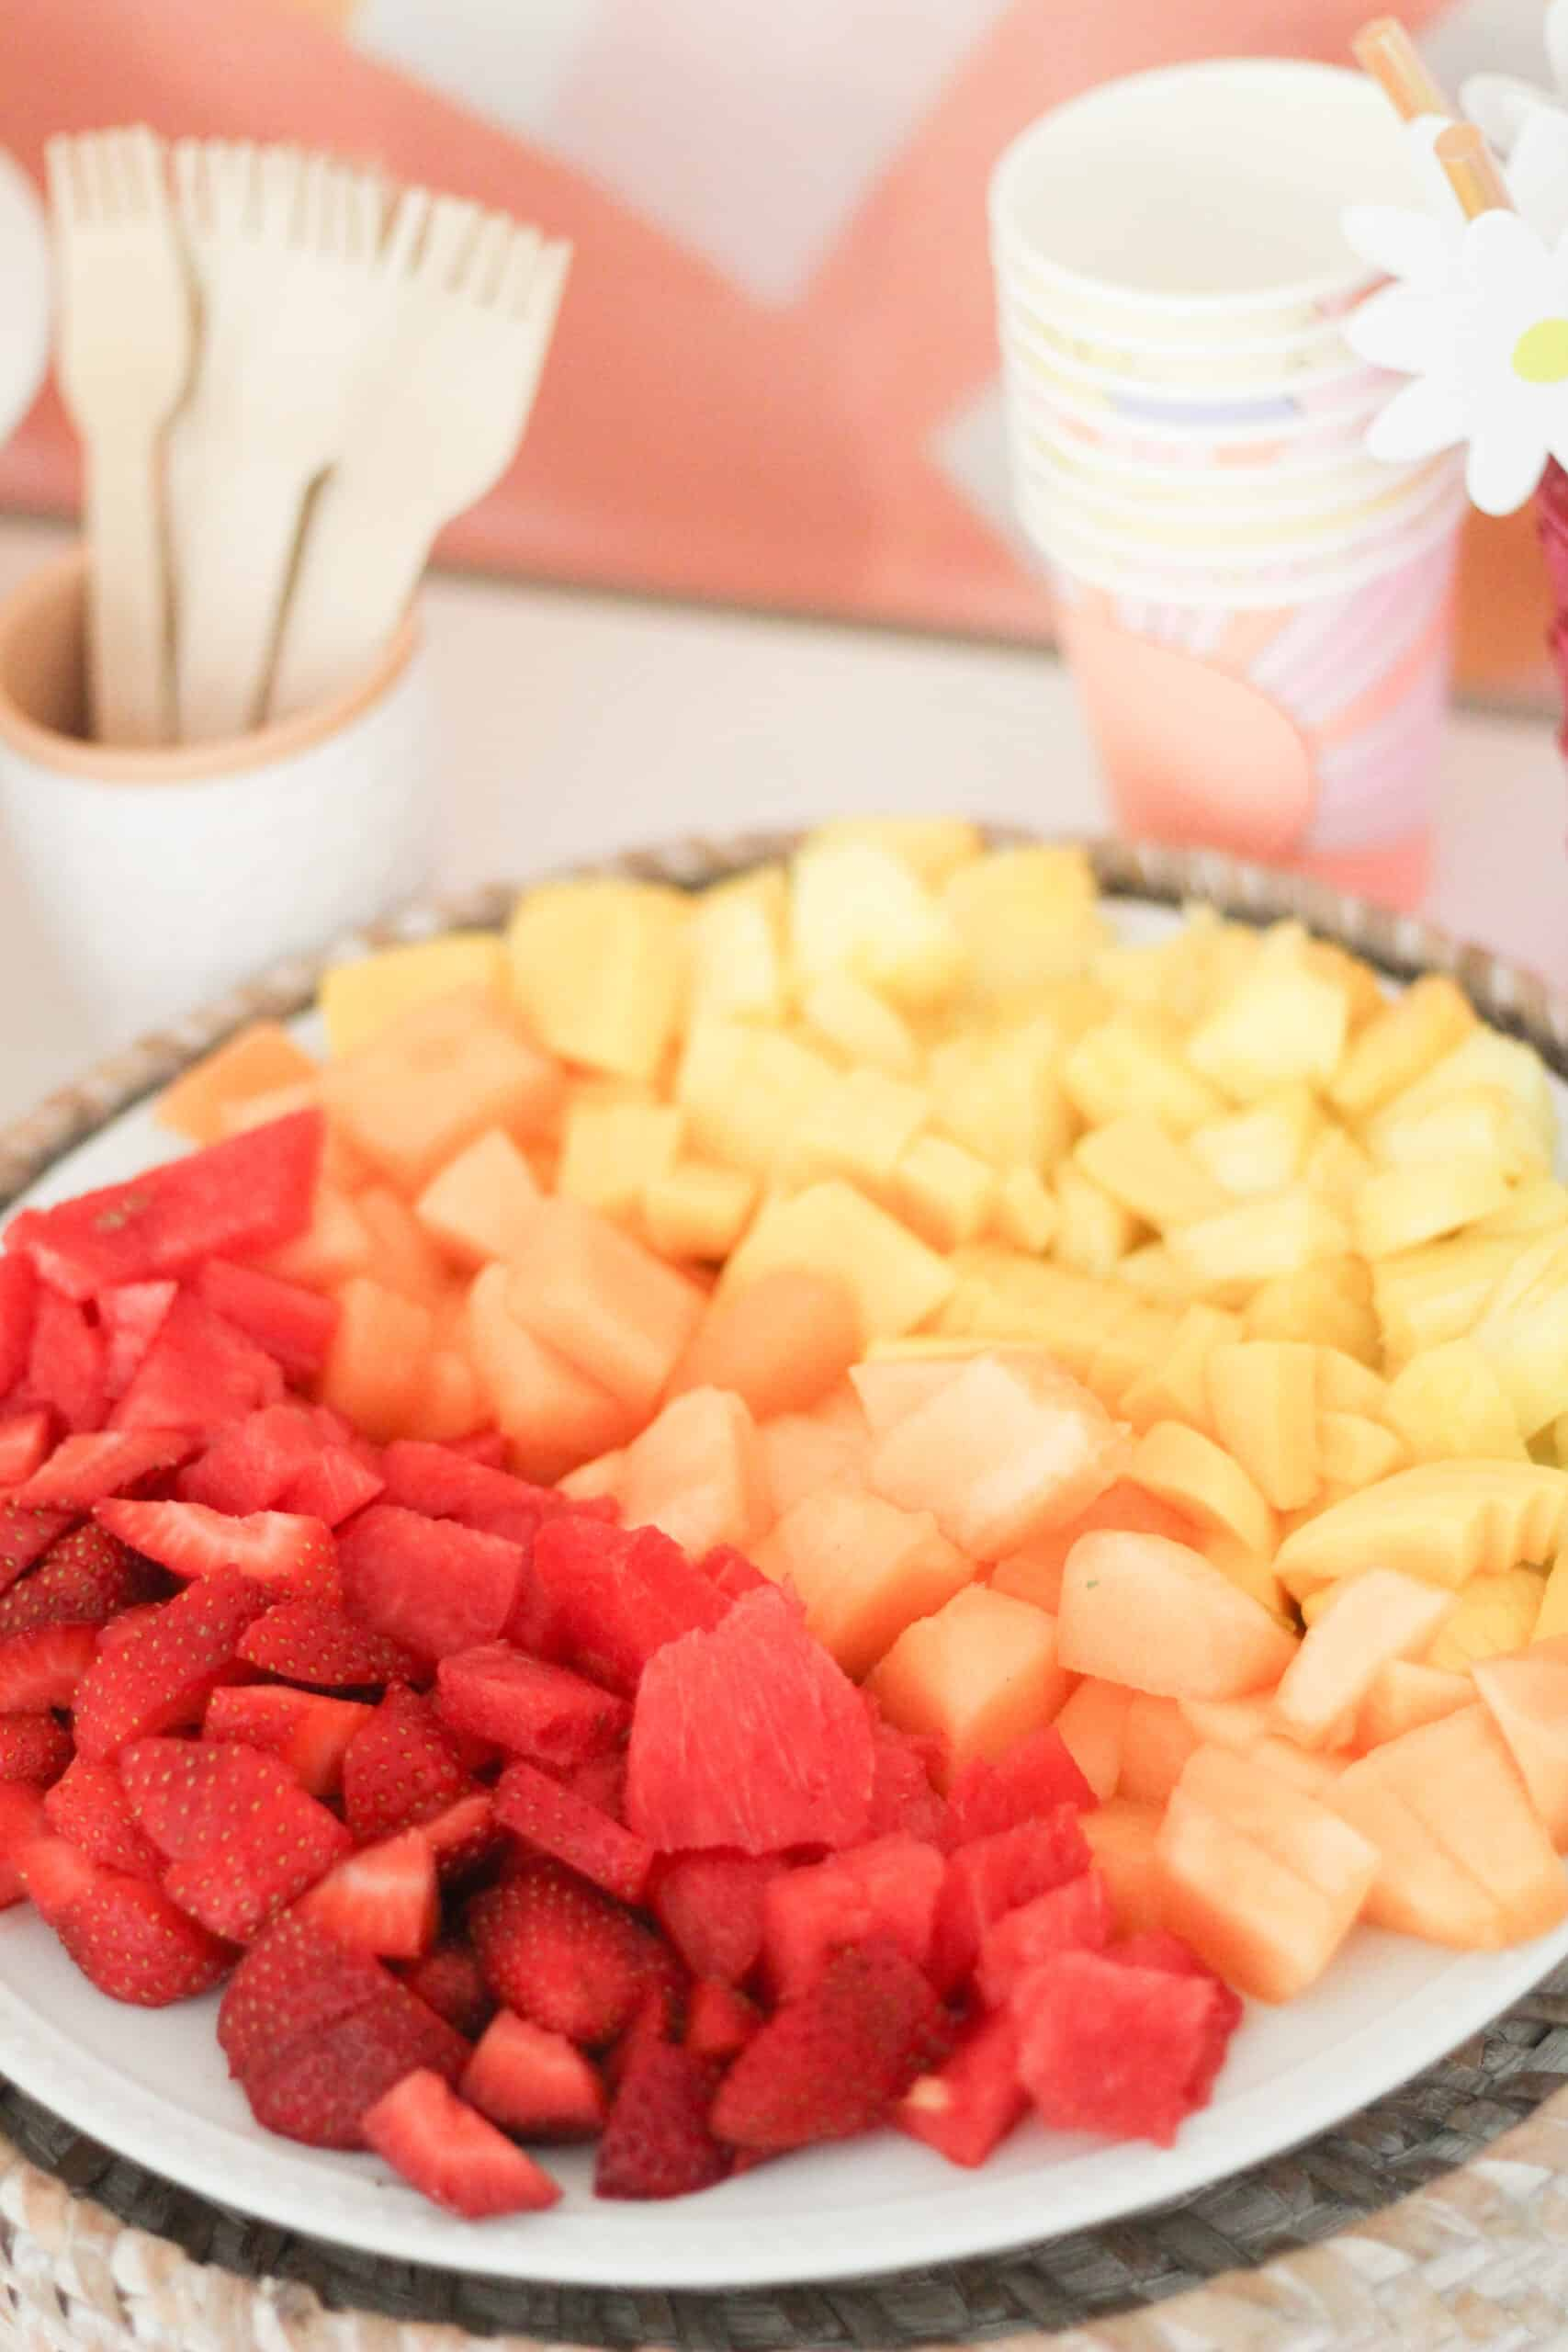 ombré fruit tray from red to yellow